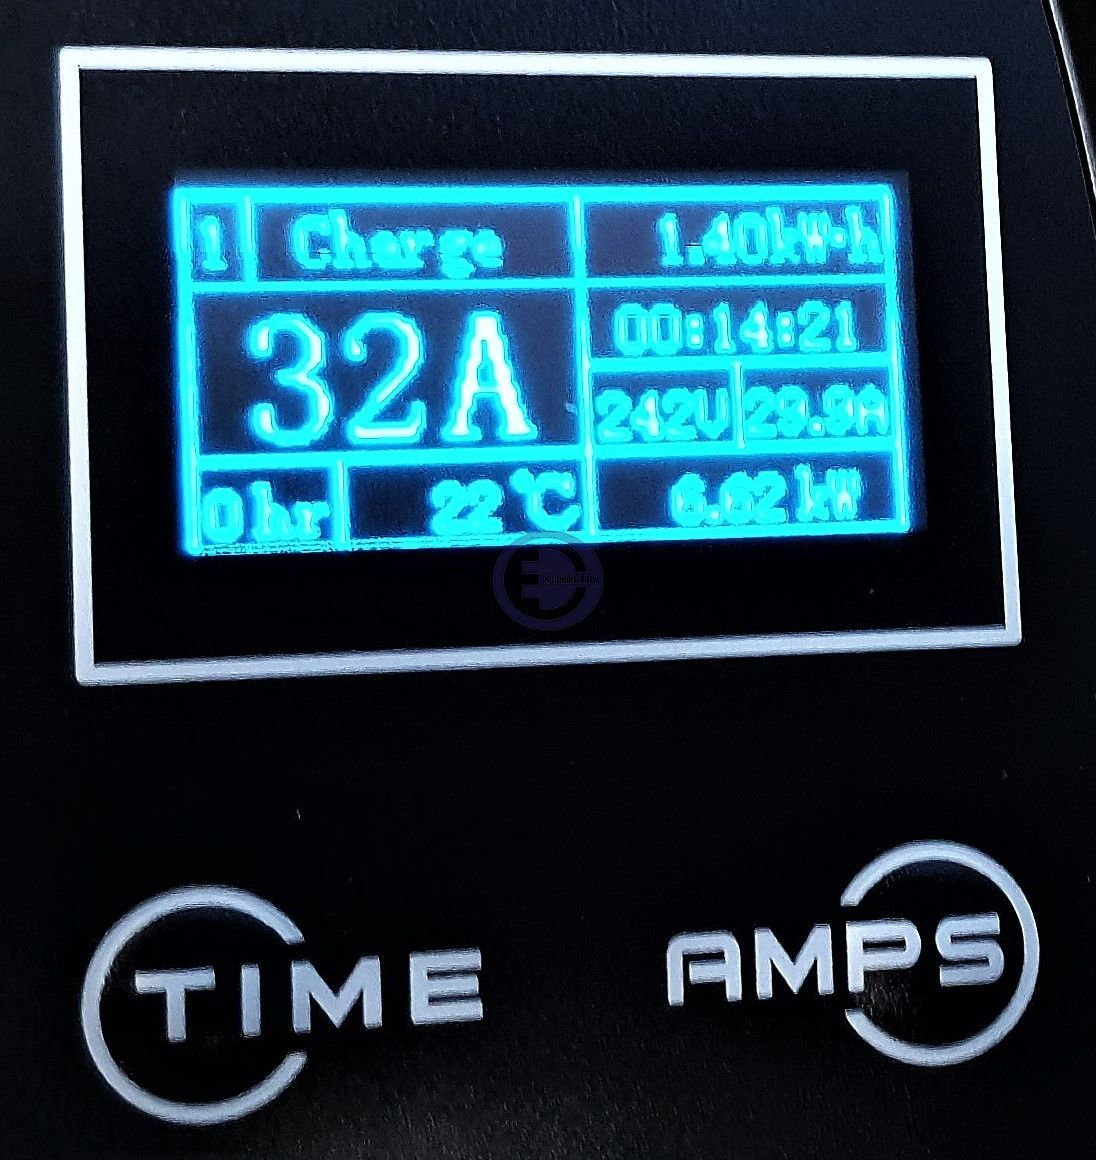 OLED display view 32A